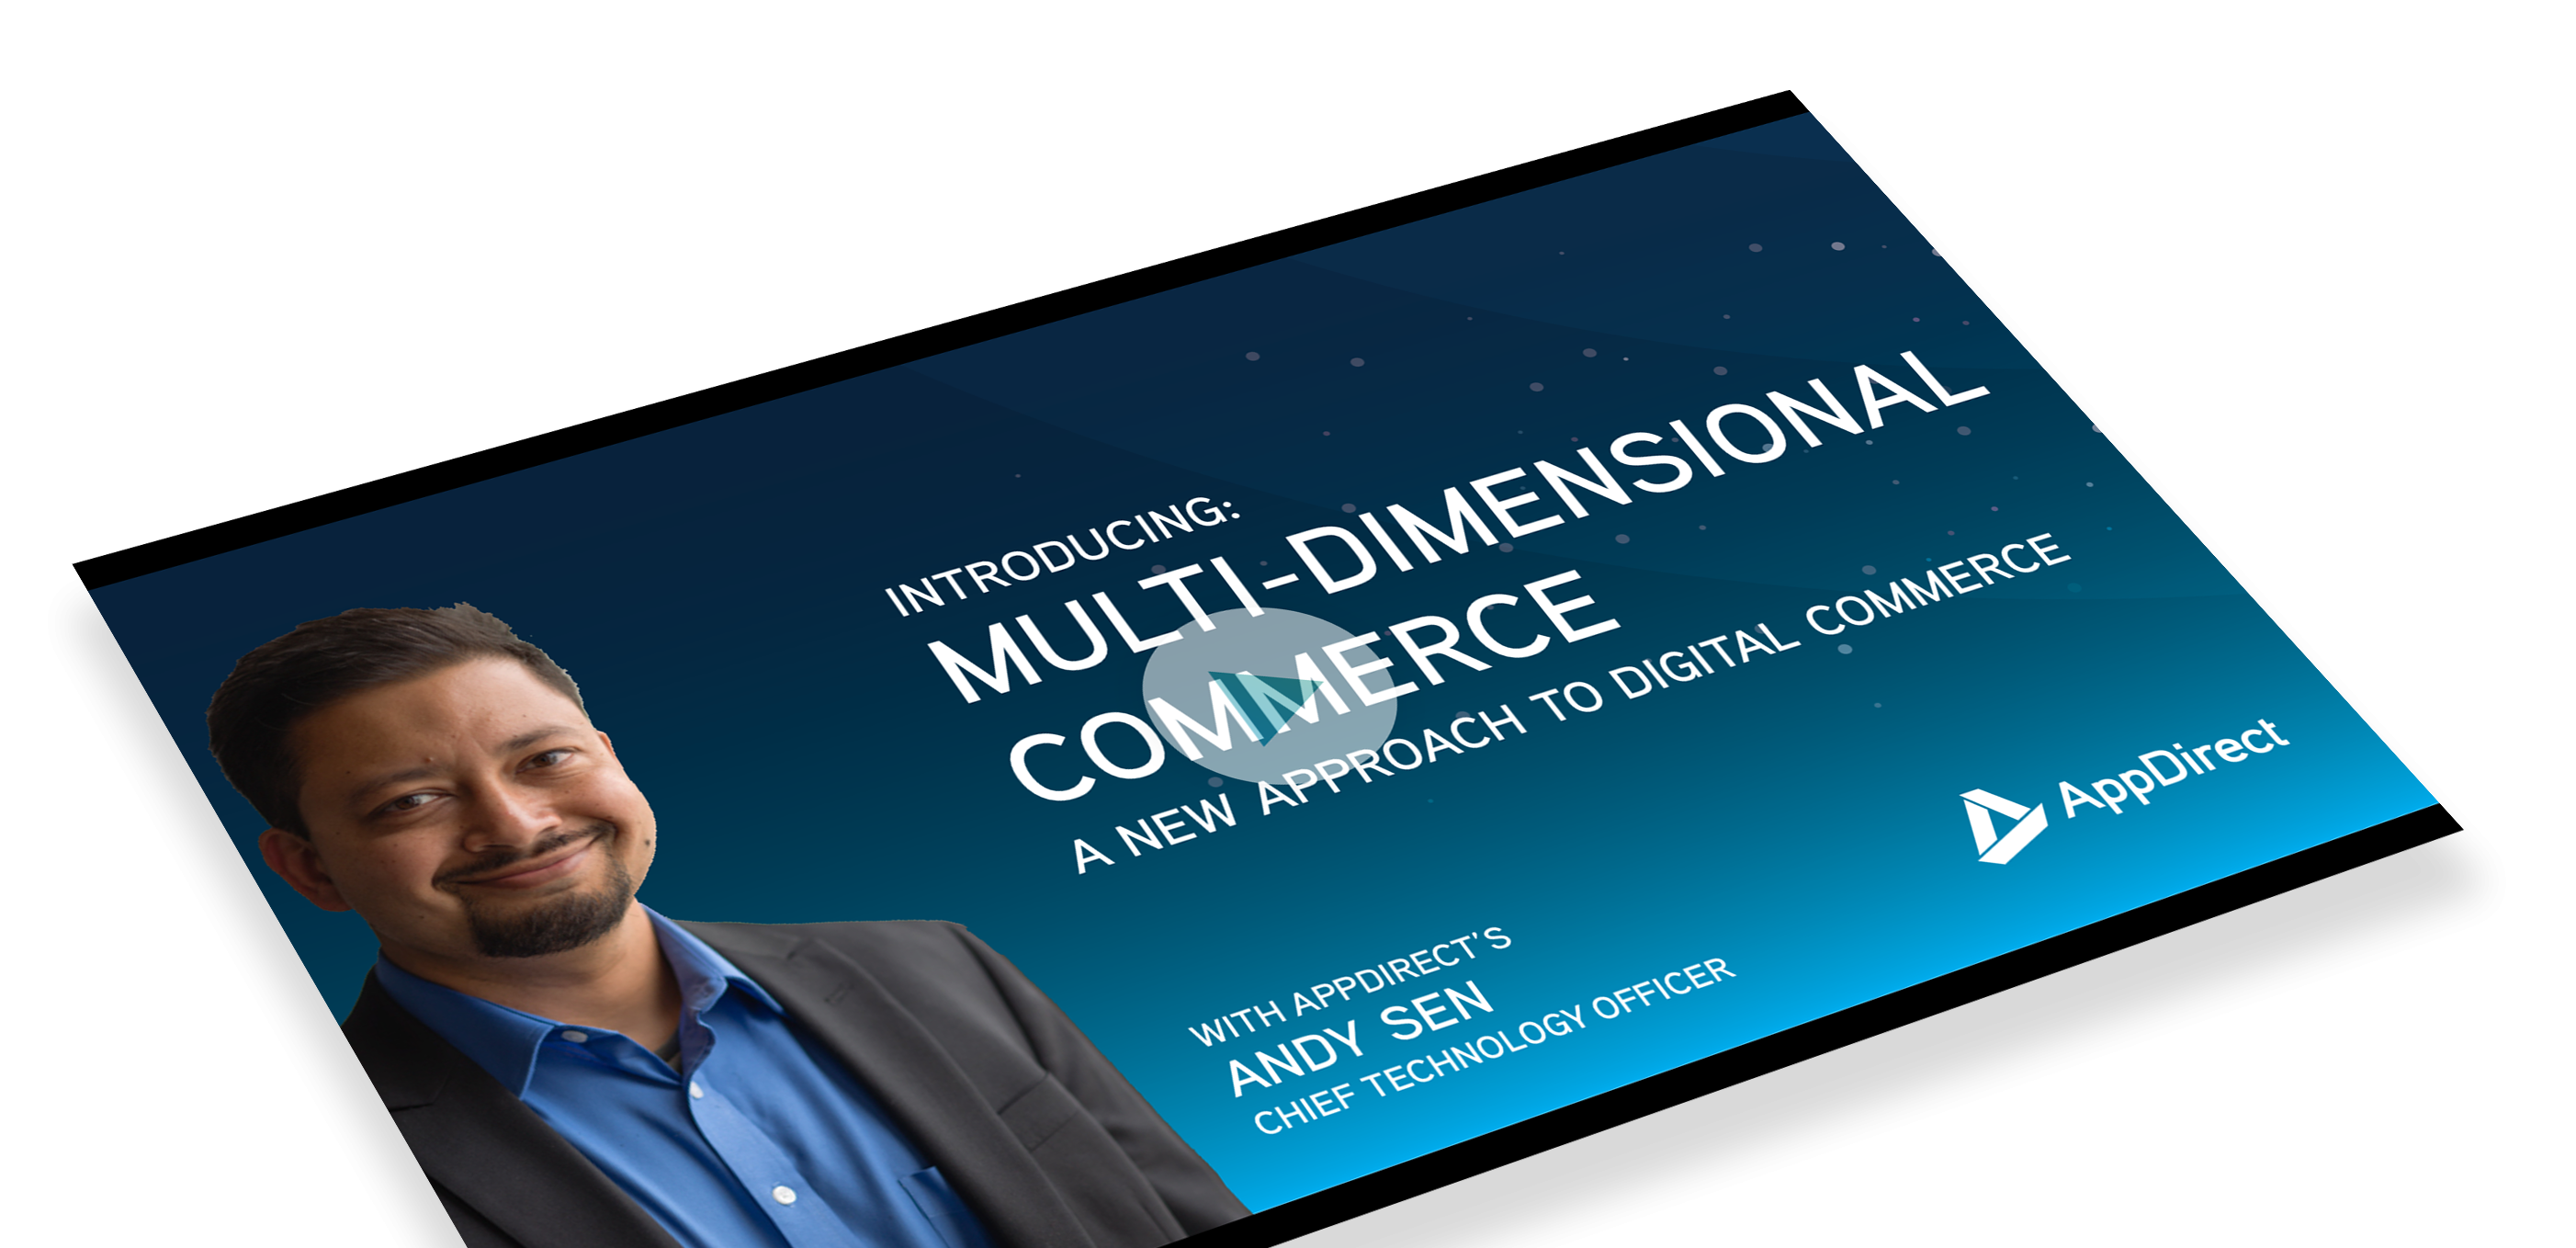 Introduction to Multi-Dimensional Commerce